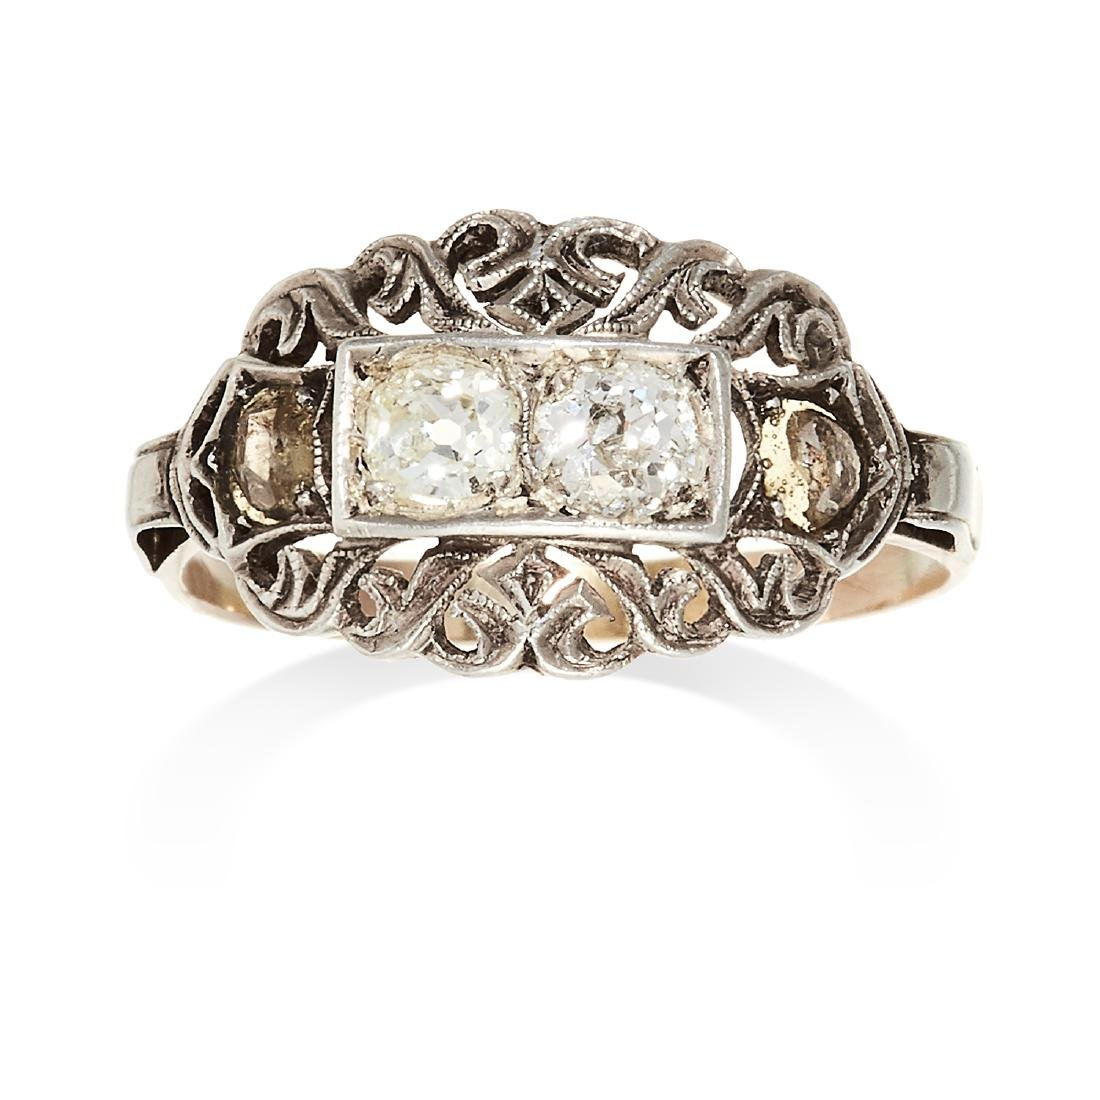 AN ANTIQUE DIAMOND DRESS RING in yellow gold and